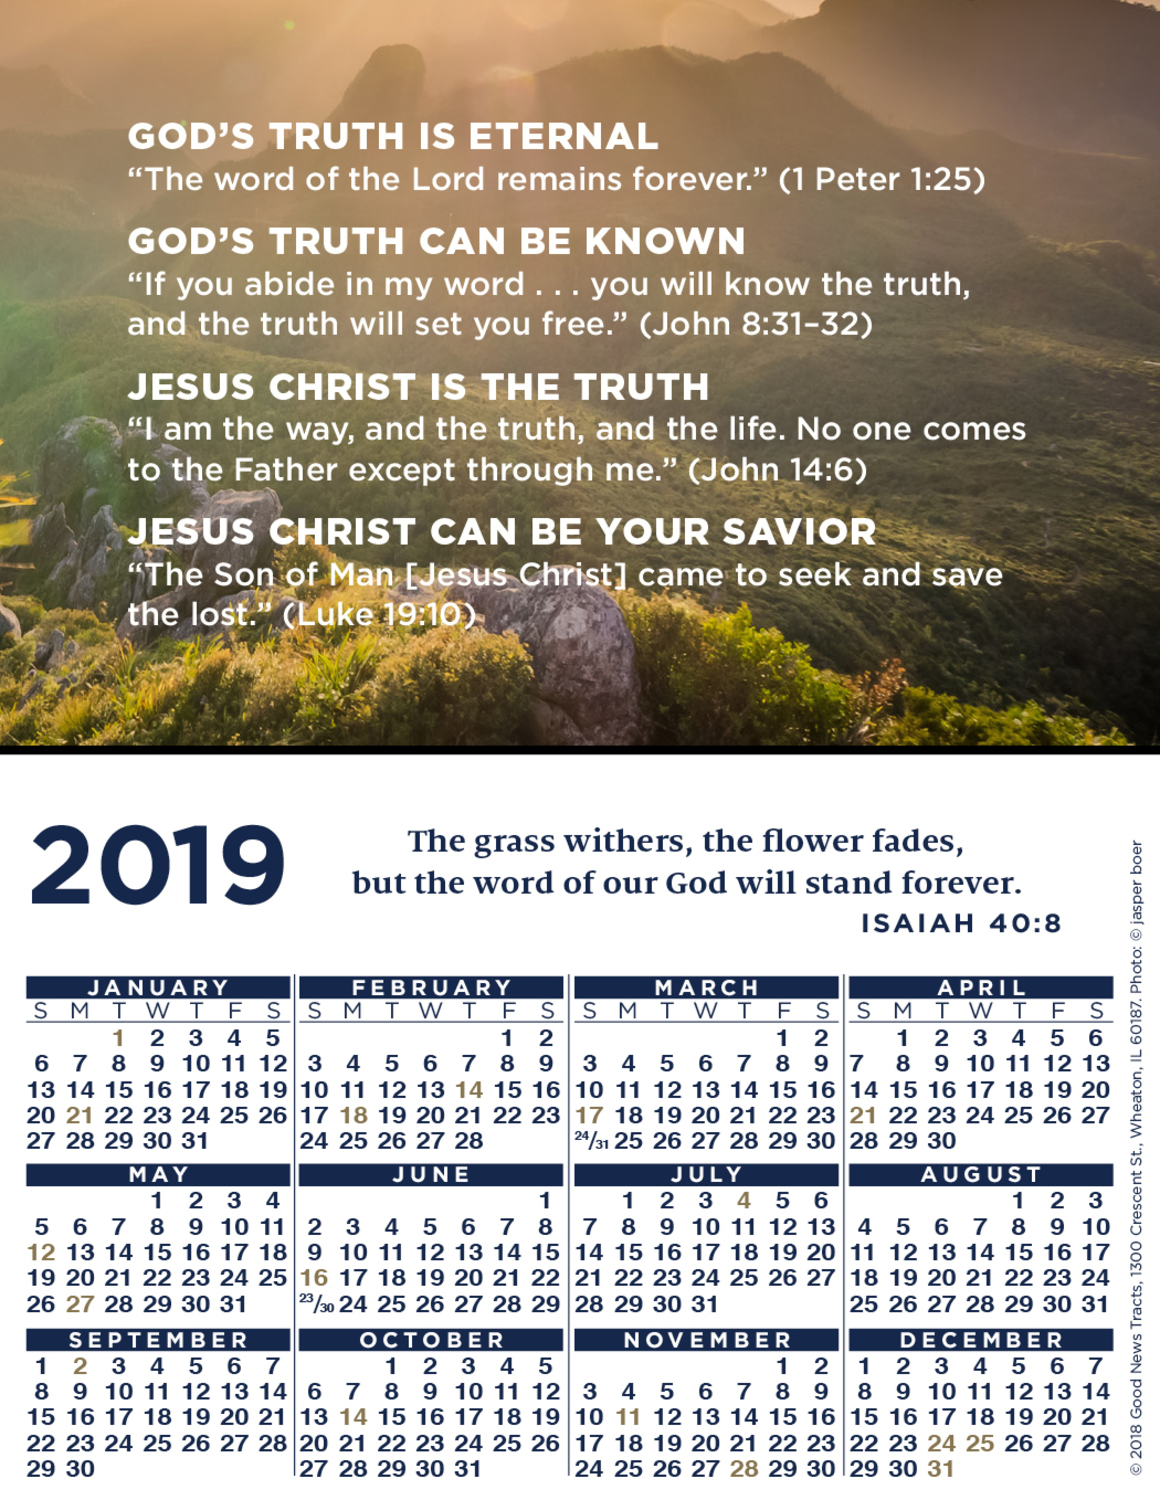 2019 Verse Calendar Card (Message)